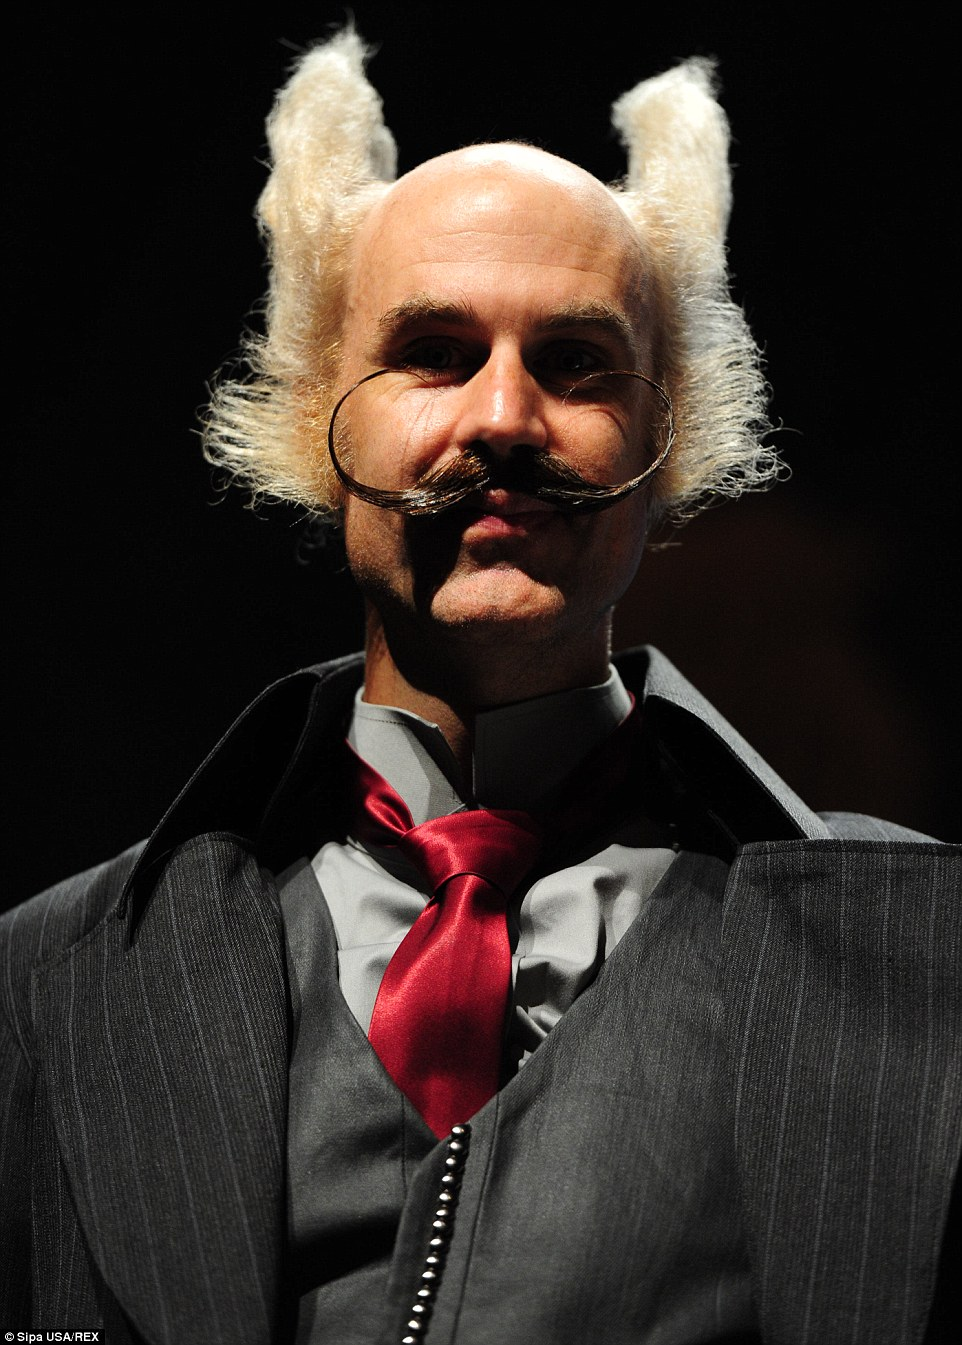 A man shows off his wispy, curved moustache and fuzzy white hair, complete with a waistcoat and tie combination